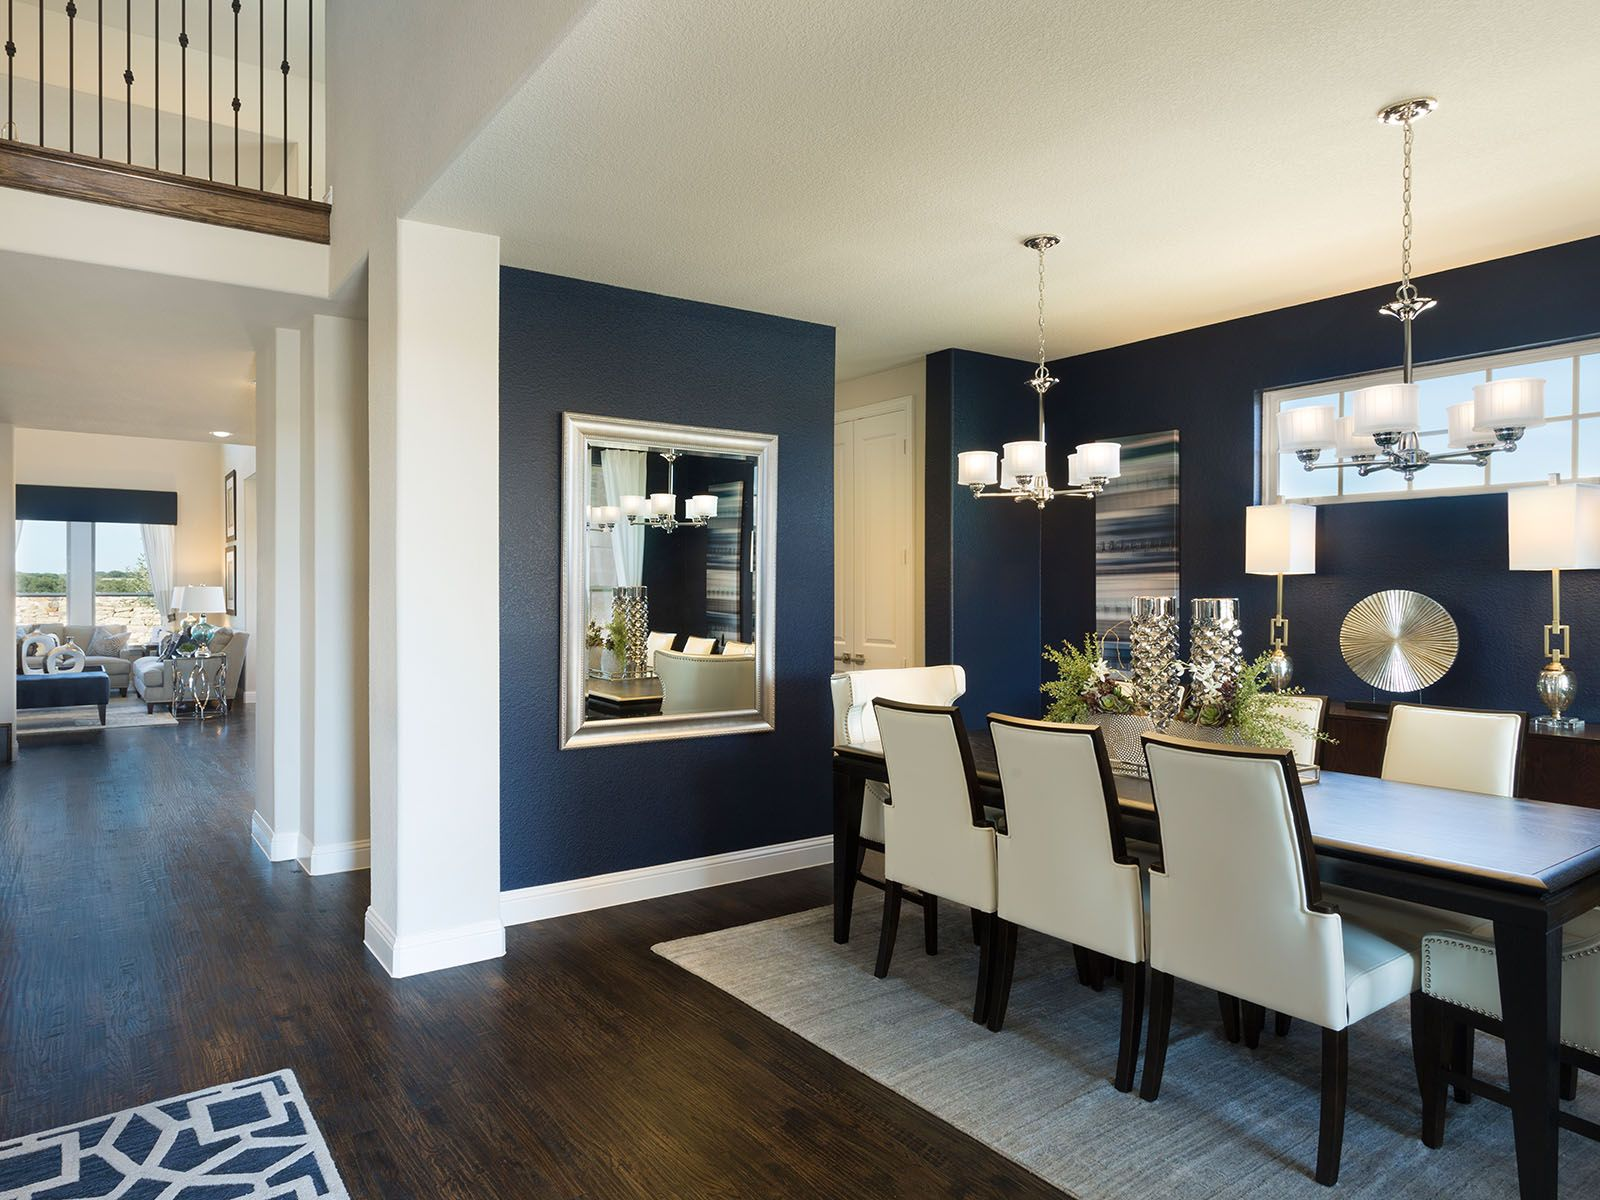 Model Home Dining Rooms Inspiration Meritage Homes Model Home Lantana  Beautiful Navy Walls Dining Design Ideas